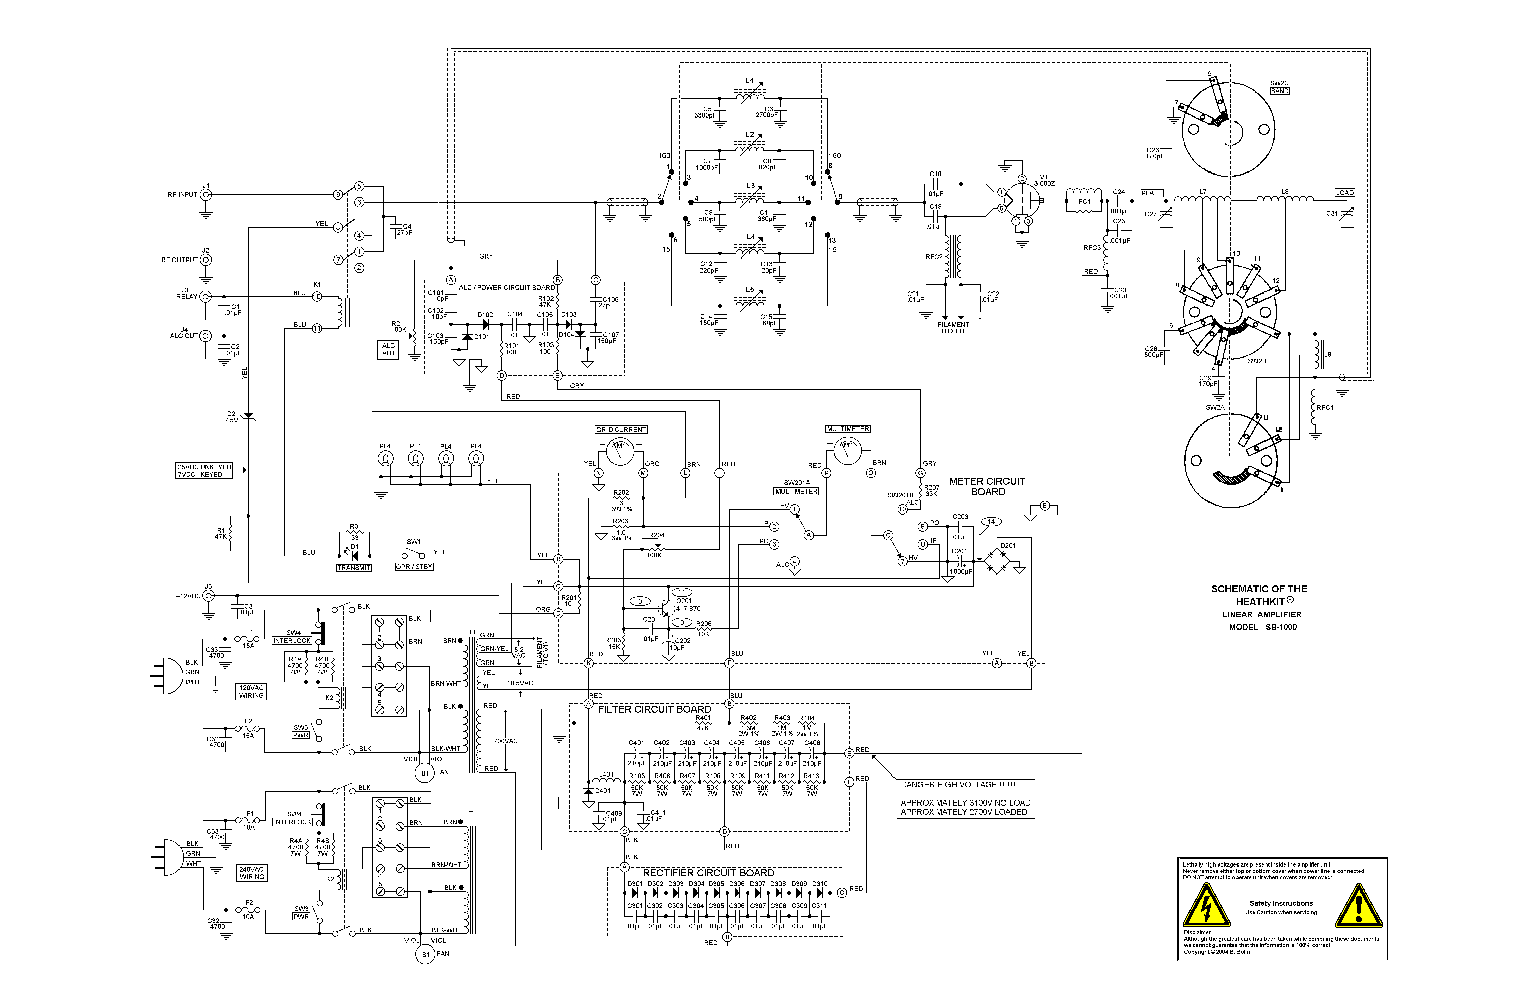 Simpson 260 Schematic Diagram Wiring Diagrams Electrical For A Multimeter Heathkit Vf 1 Samsung Schematics Elsavadorla 8p Repeatability